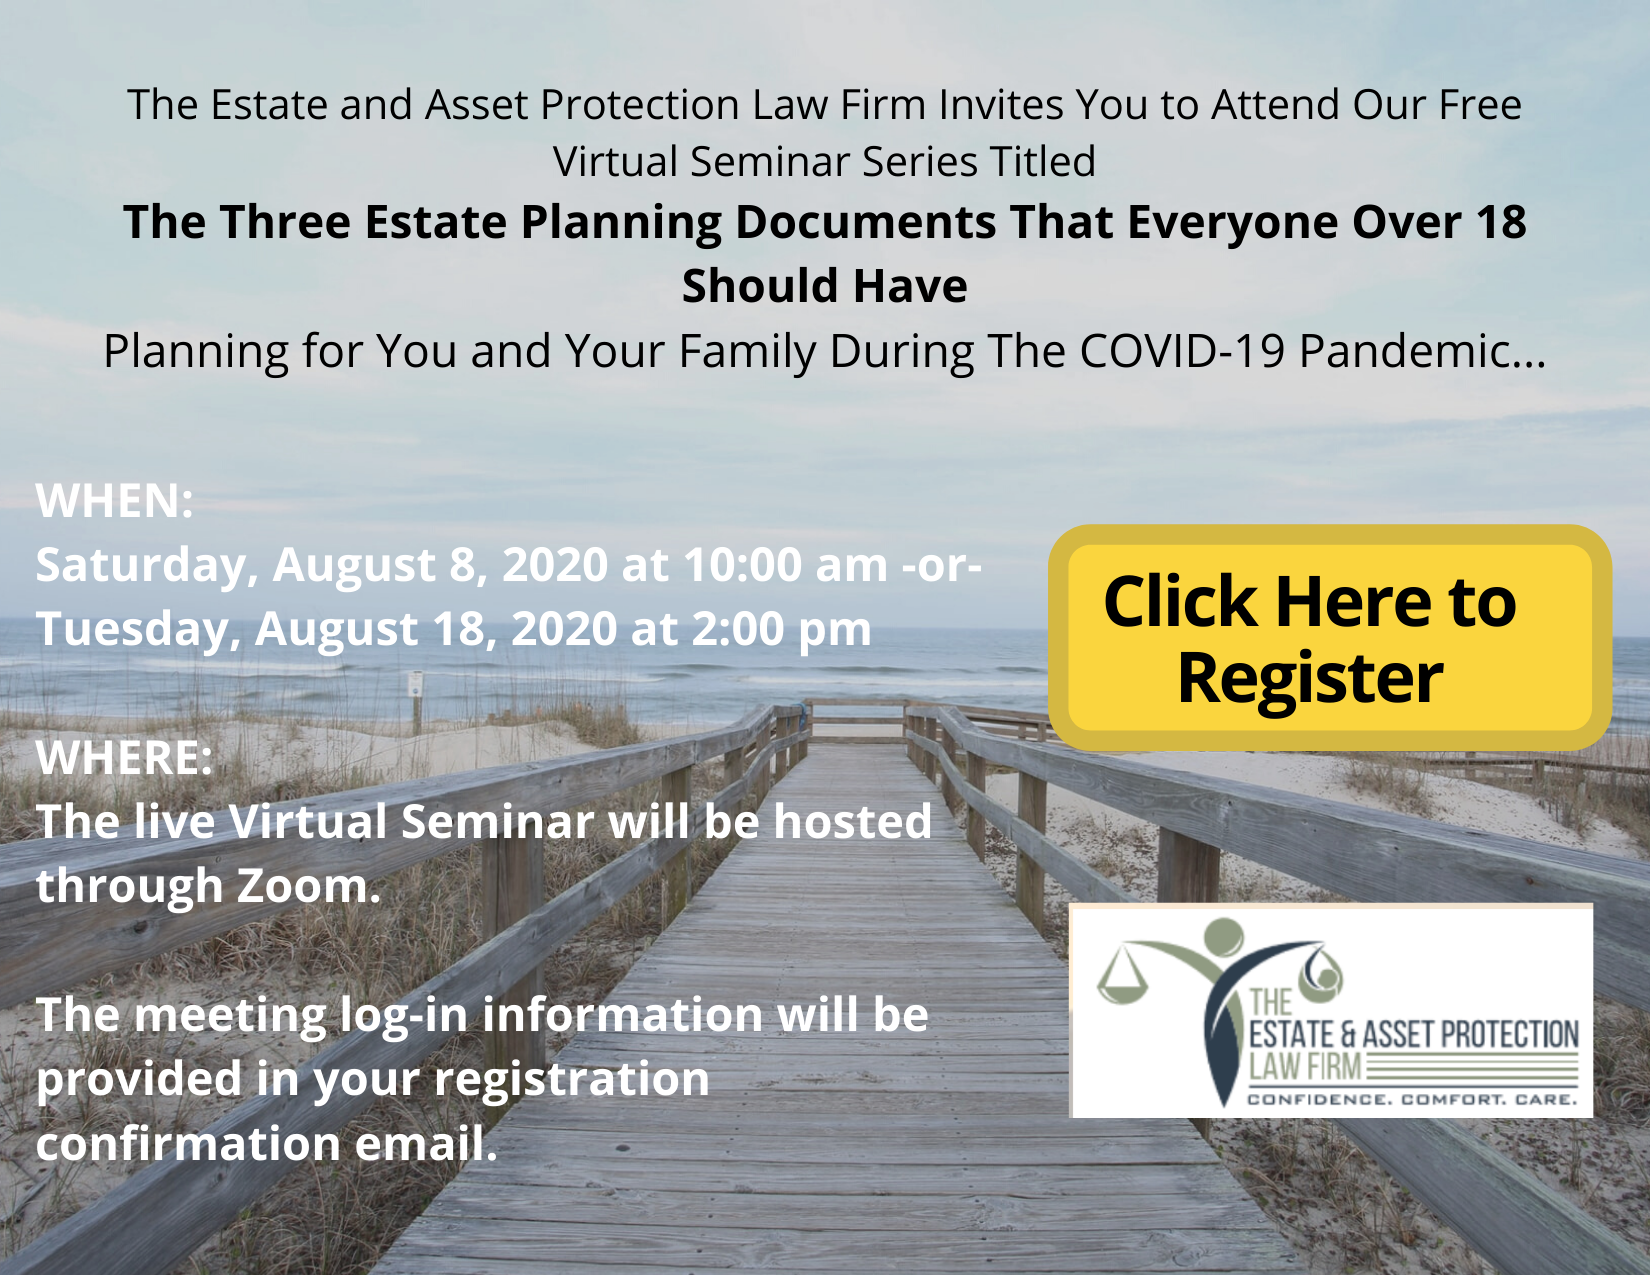 Image of The Estate  amp; Asset Protection Law Firm retirement planning estate planning Estate  amp; Asset Protection Law Firm Elder Law Georgia COVID 19 asset protection plan asset protection  on estate management asset protection law site